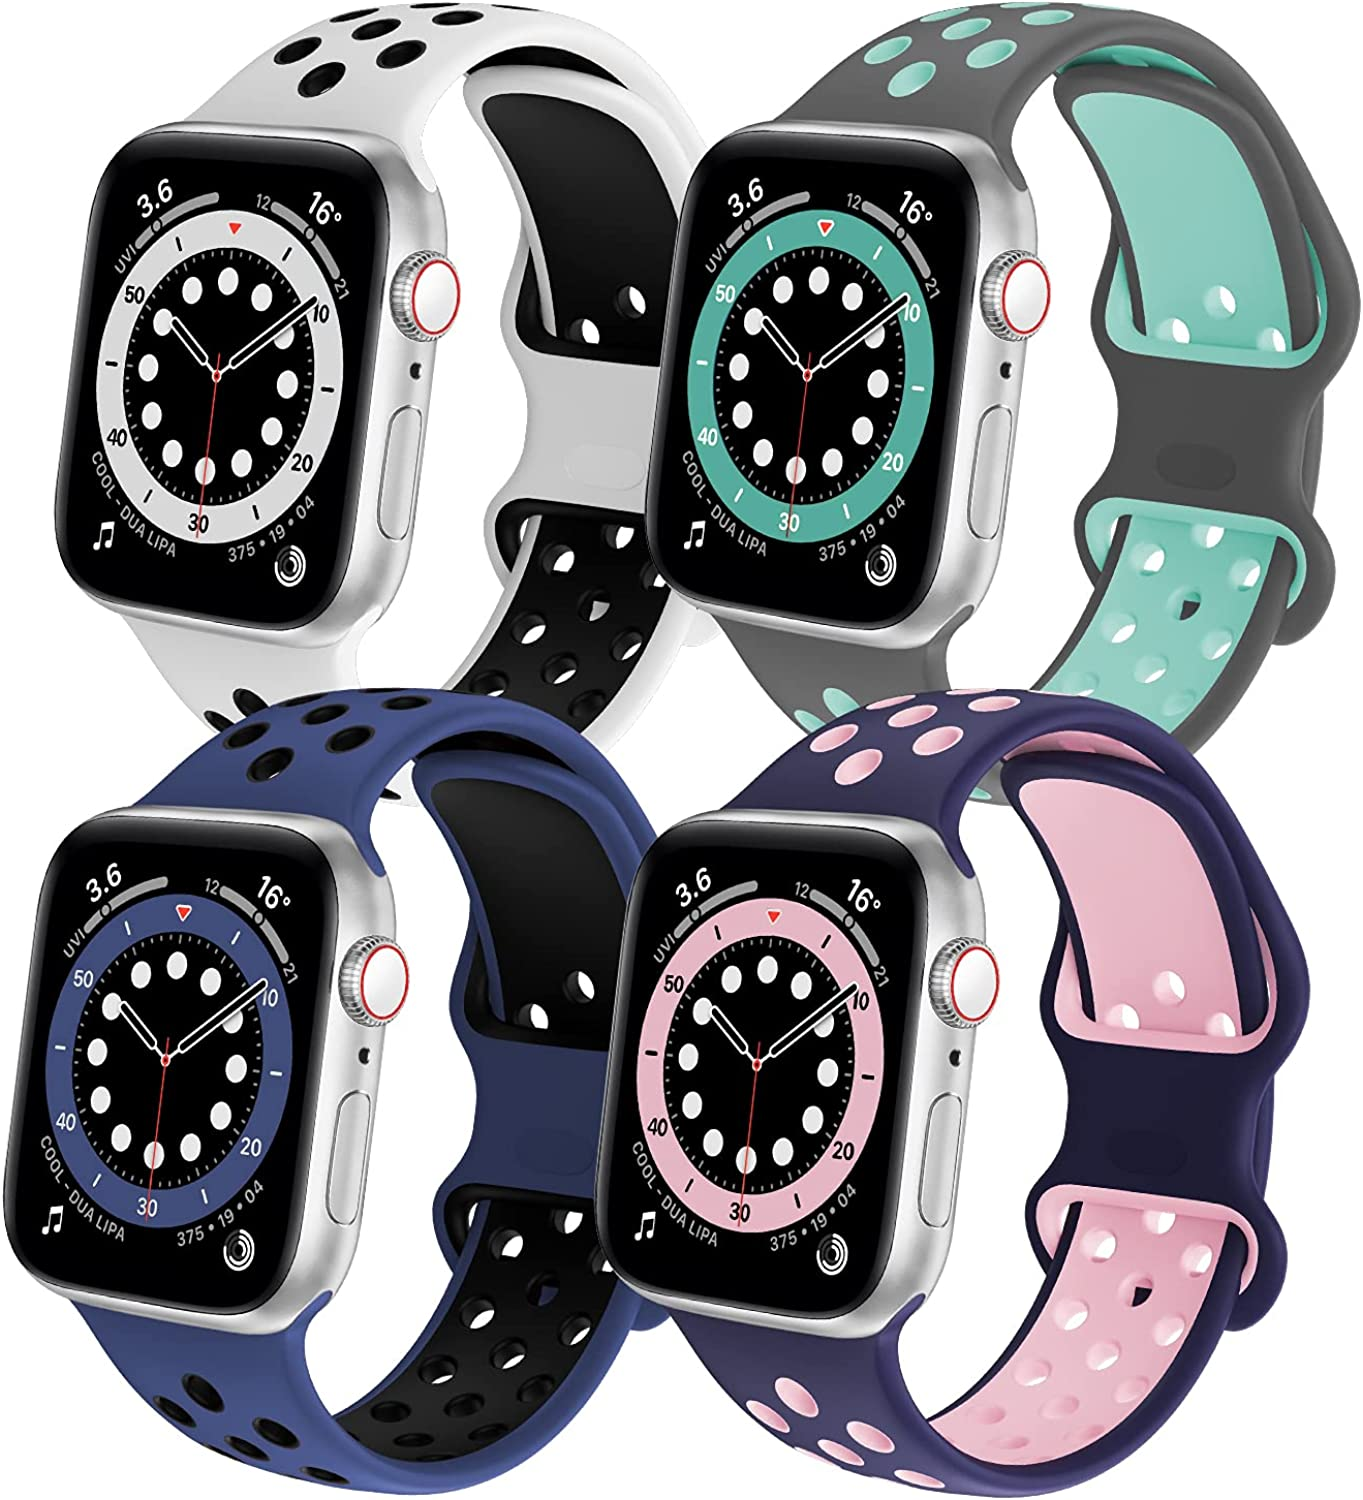 SWHAS Watch Bands Compatible with Apple Watch Bands 44mm 42mm 40mm 38mm for Women Men, Soft Silicone Replacement Strap Wristband Compatible for iWatch Series 6/SE/5/4/3/2/1